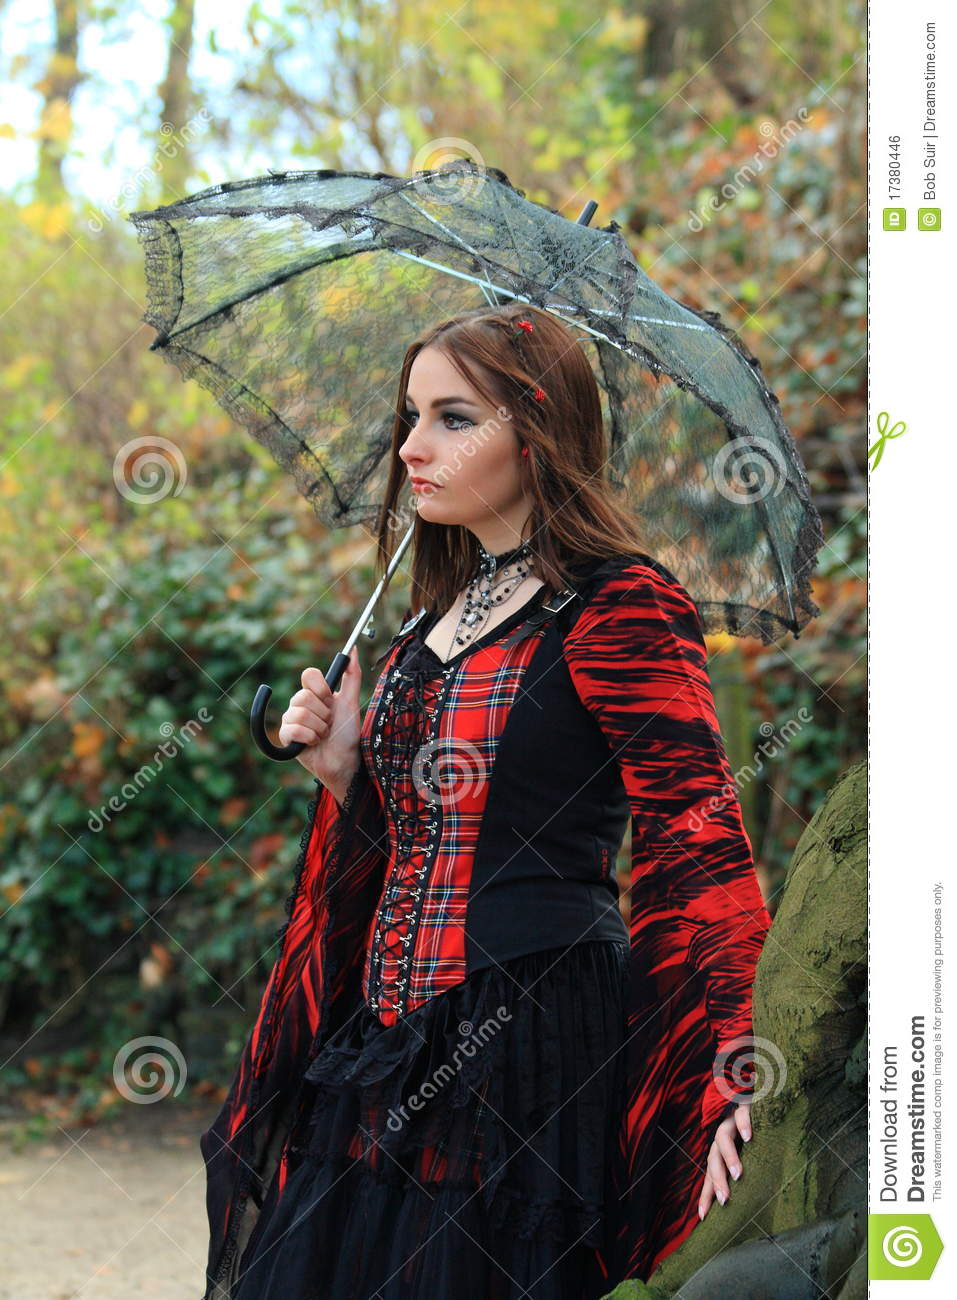 Girl in the woods with umbrella